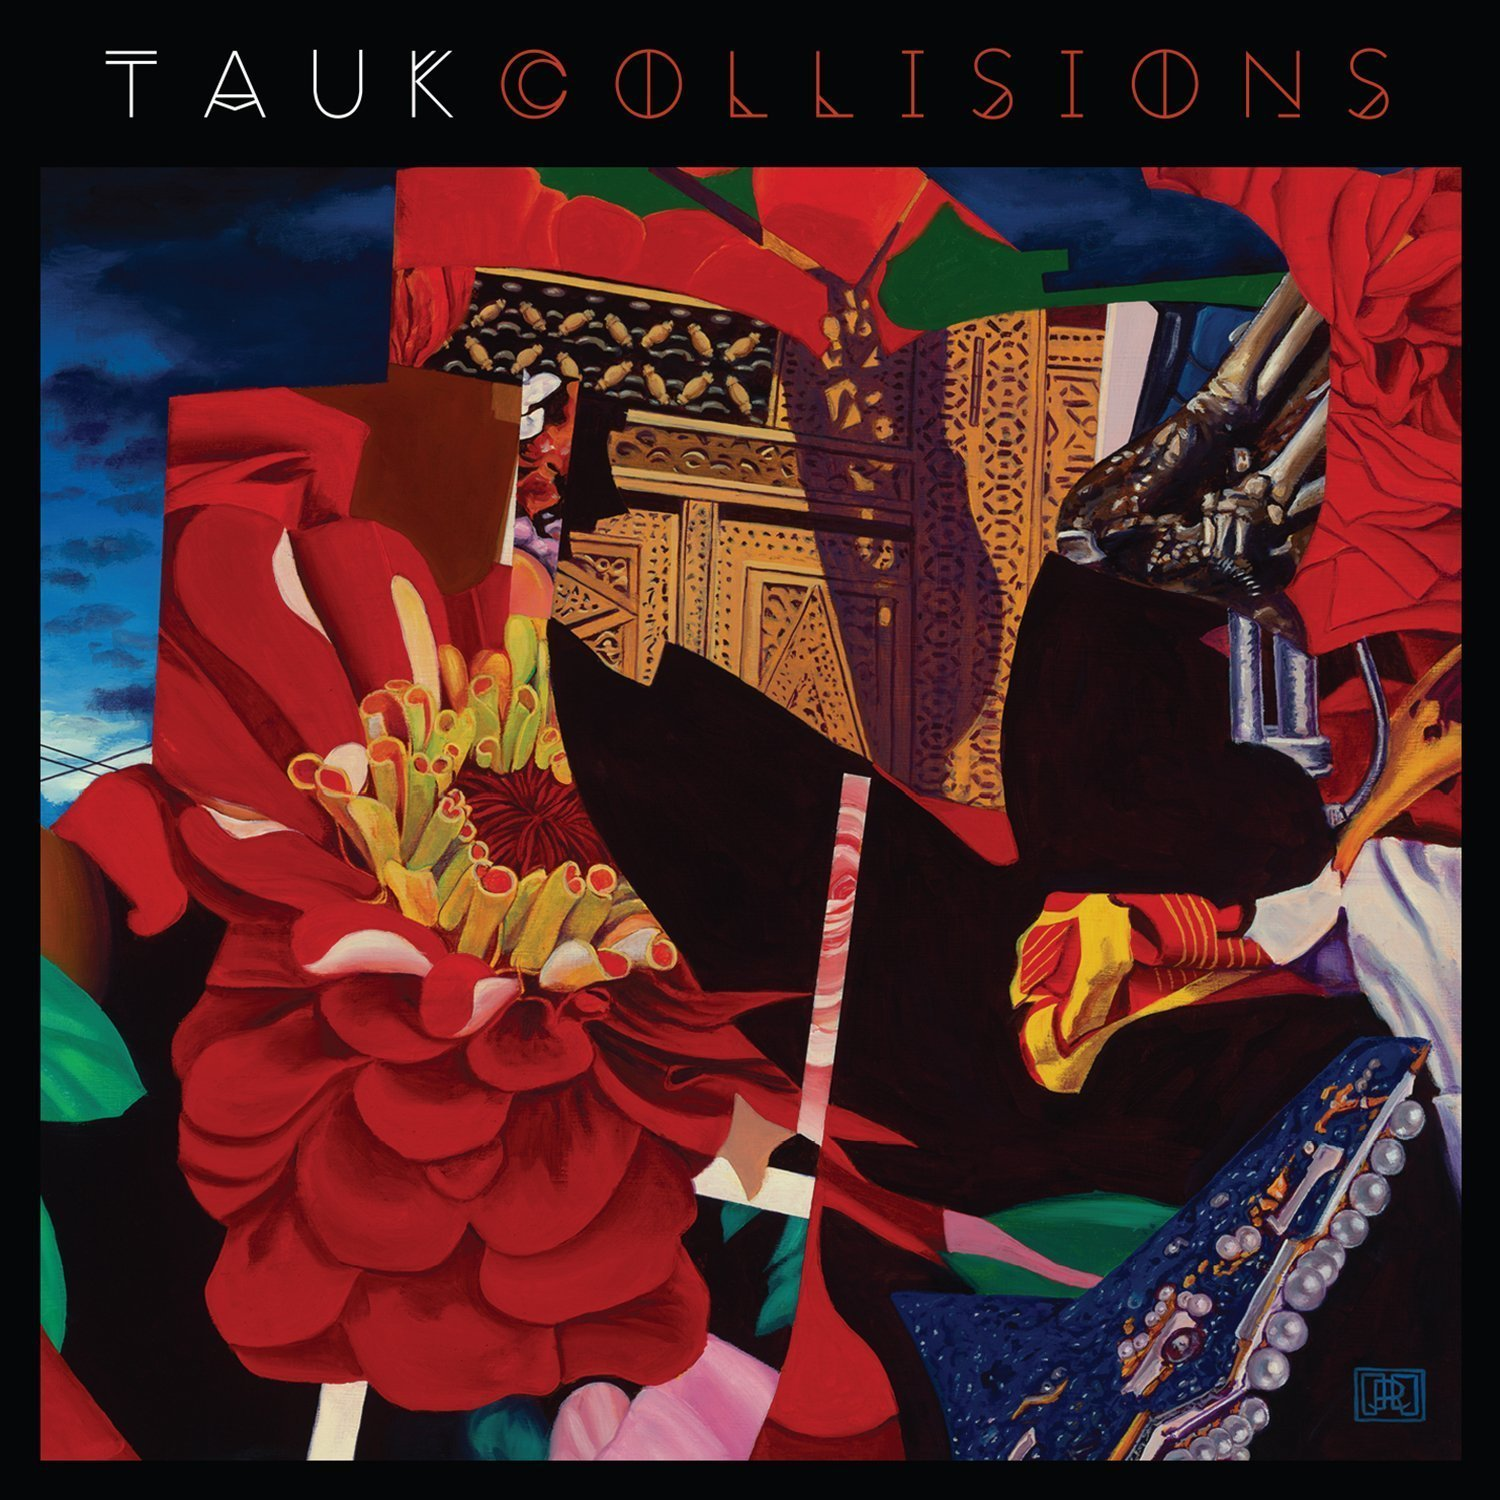 tauk-collisions-album-cover-art-2014